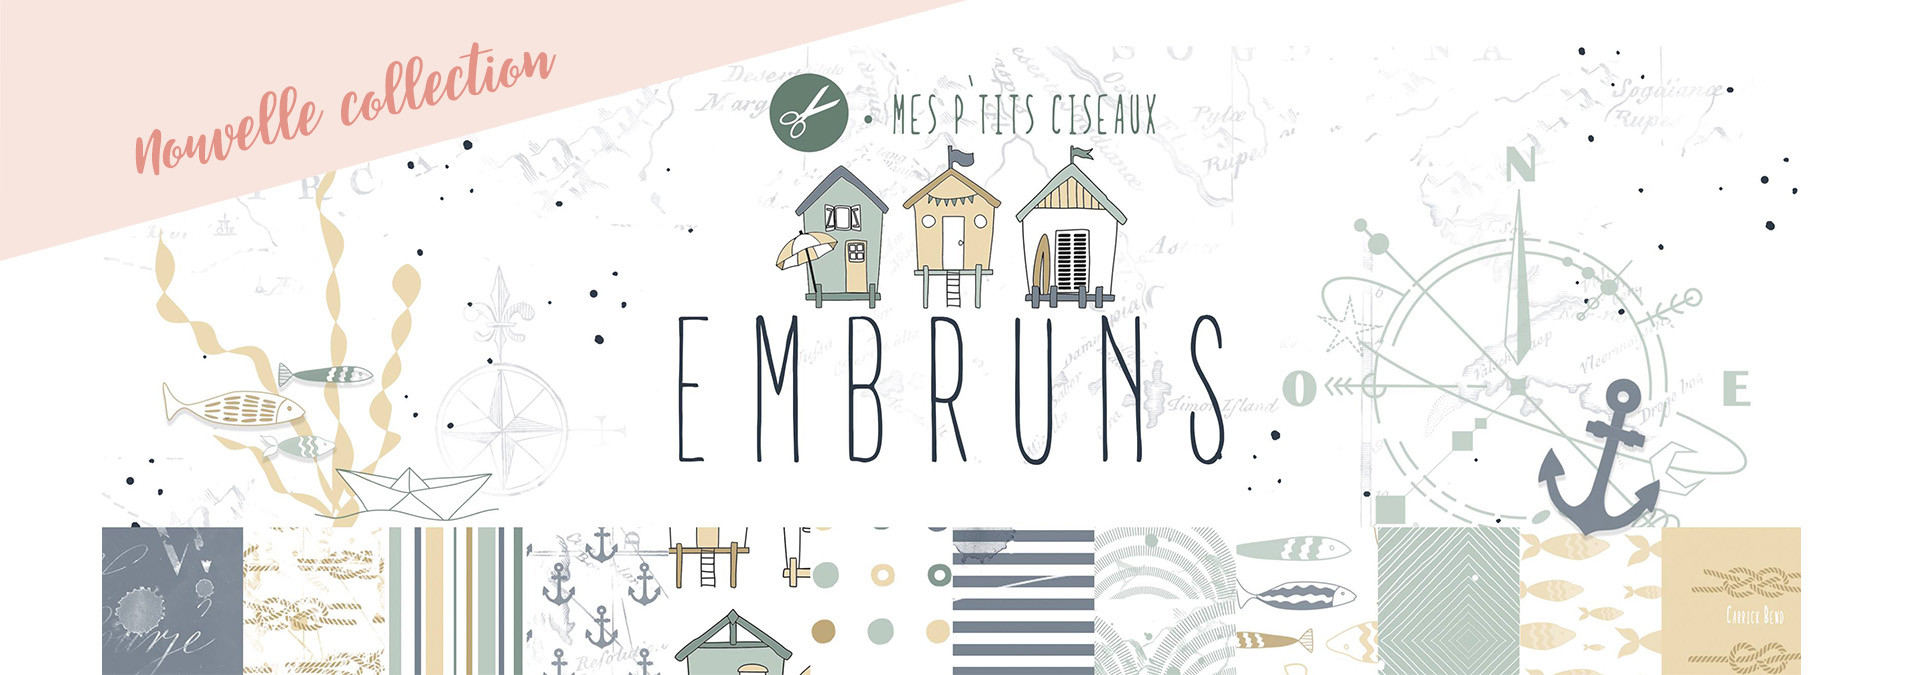 Nouvelle collection : Embruns